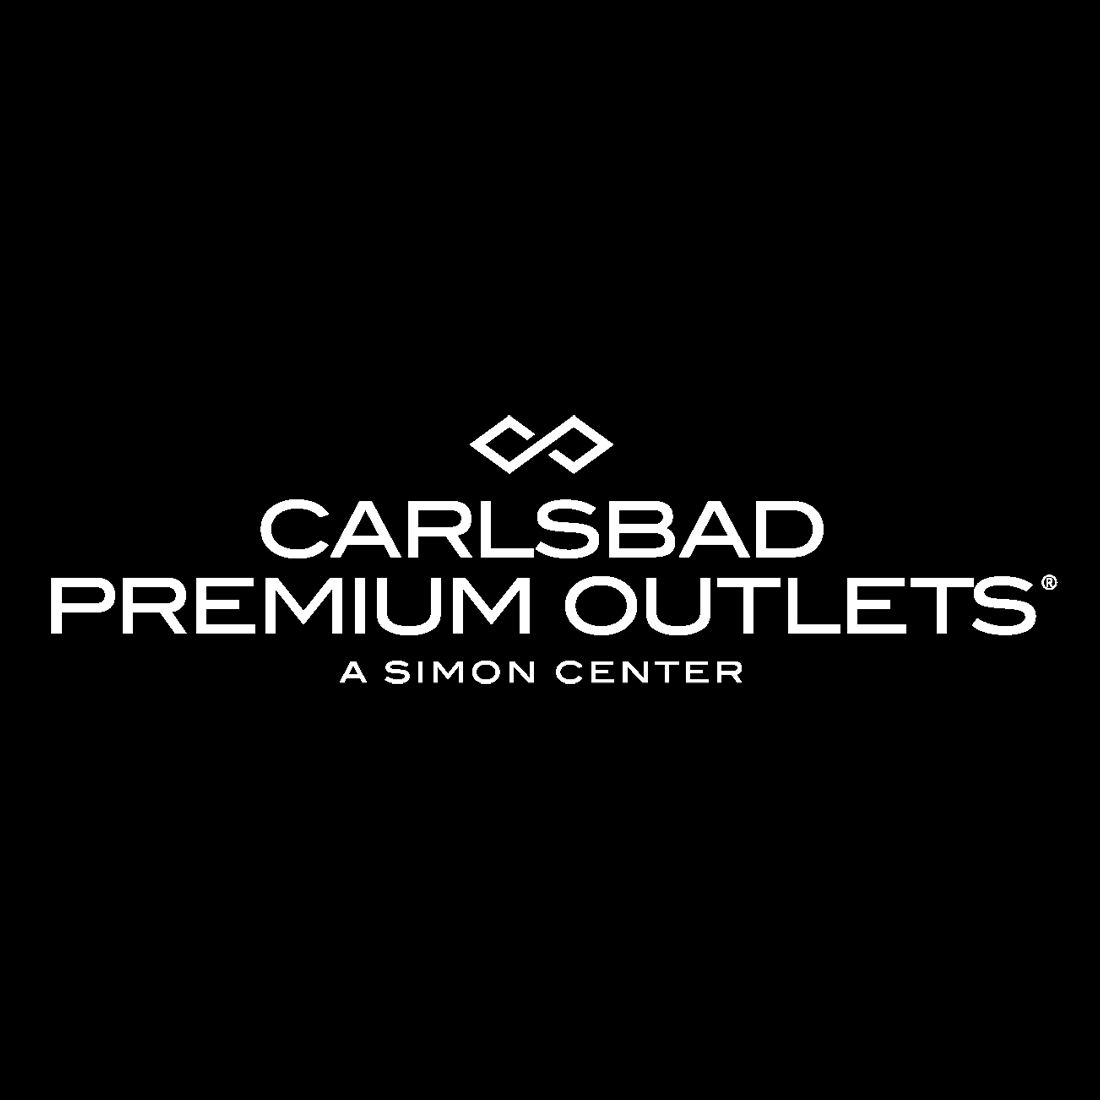 Carlsbad Premium Outlets image 20